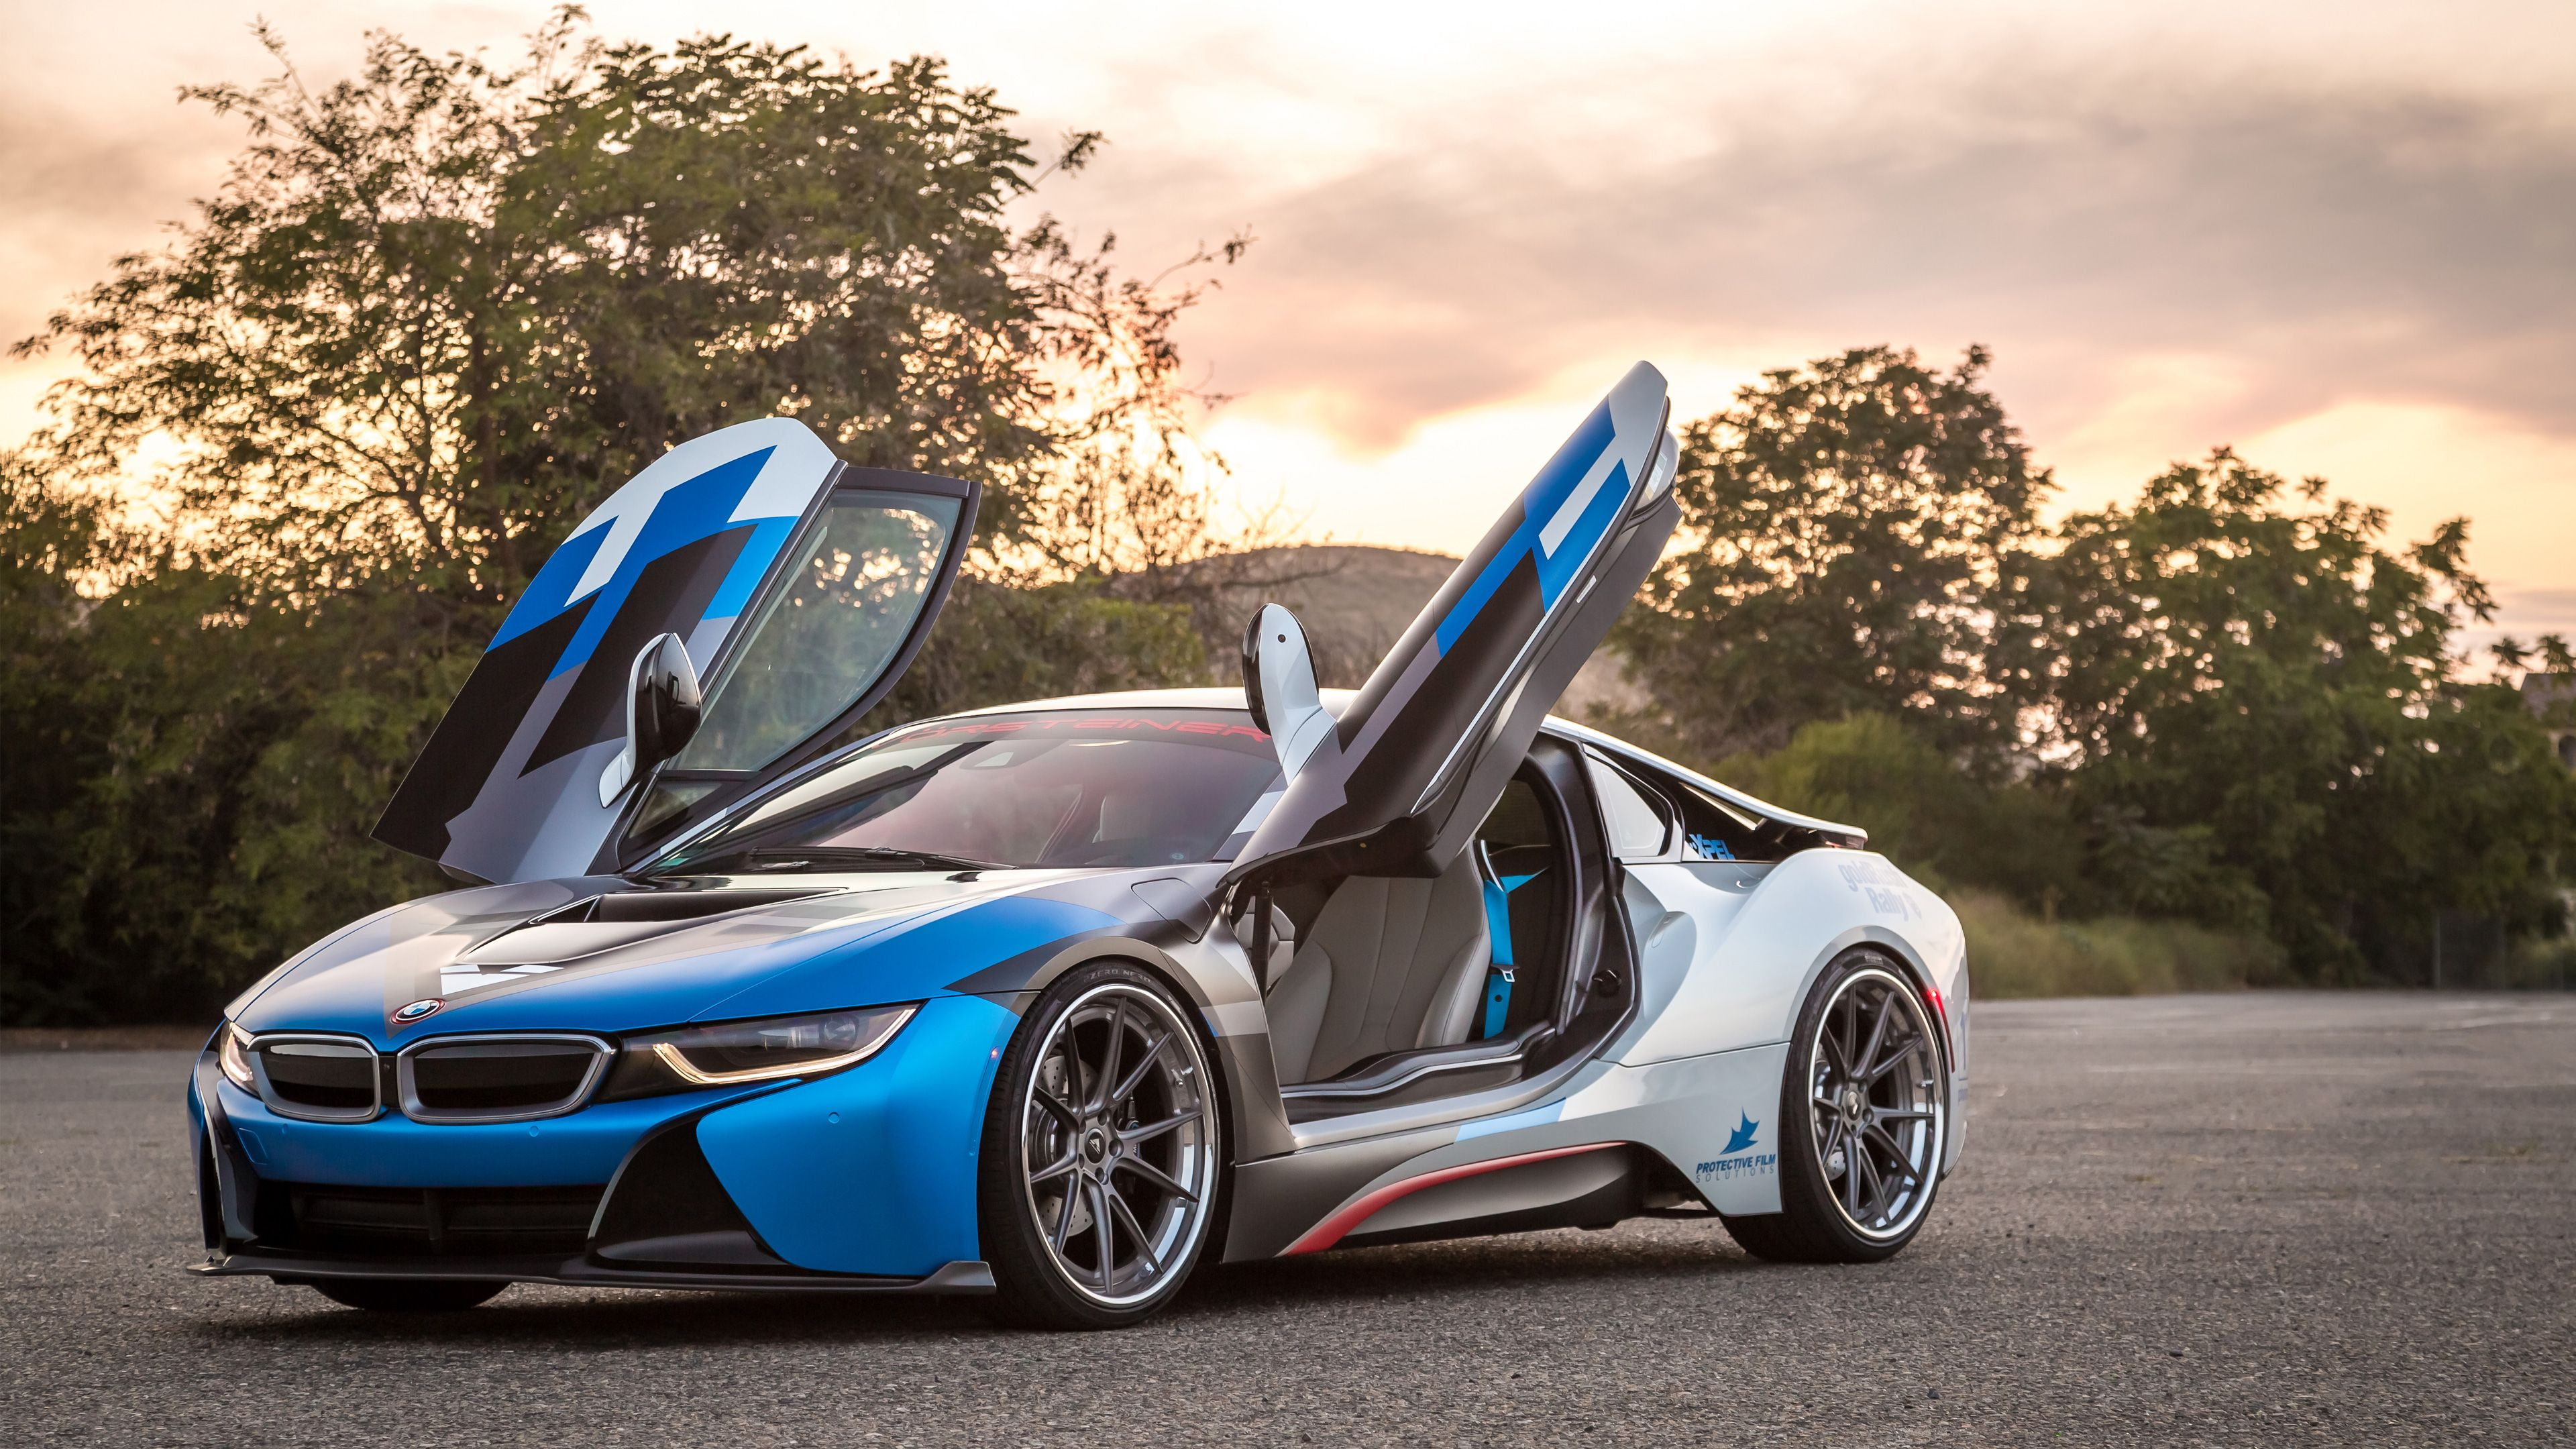 73 Best Free Bmw Sports Cars Wallpapers Wallpaperaccess